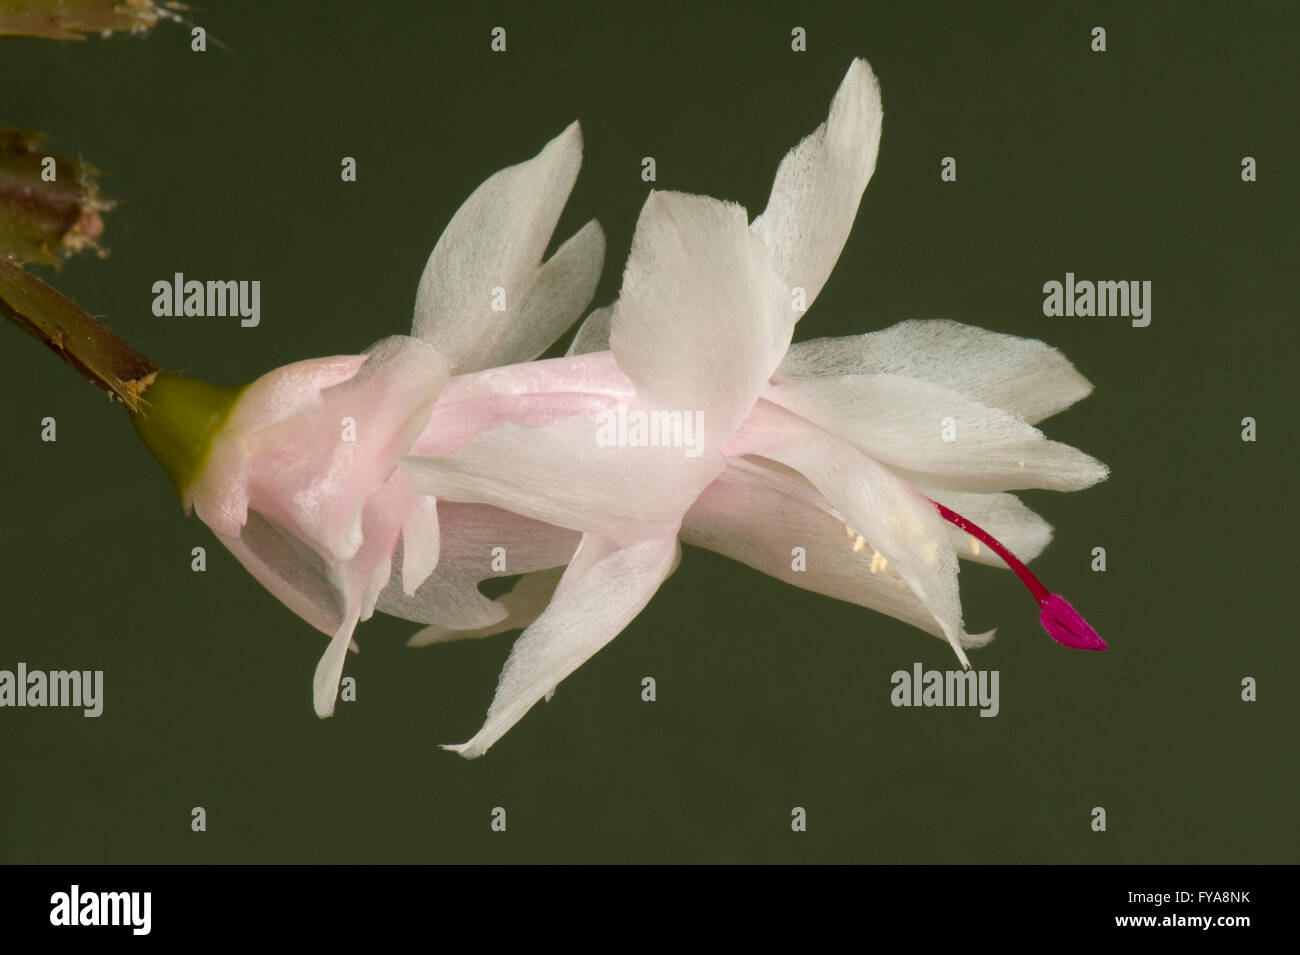 A Christmas cactus flower, Schlumbergera hybrid, with white to pink tube and puple, magenta pistol - Stock Image